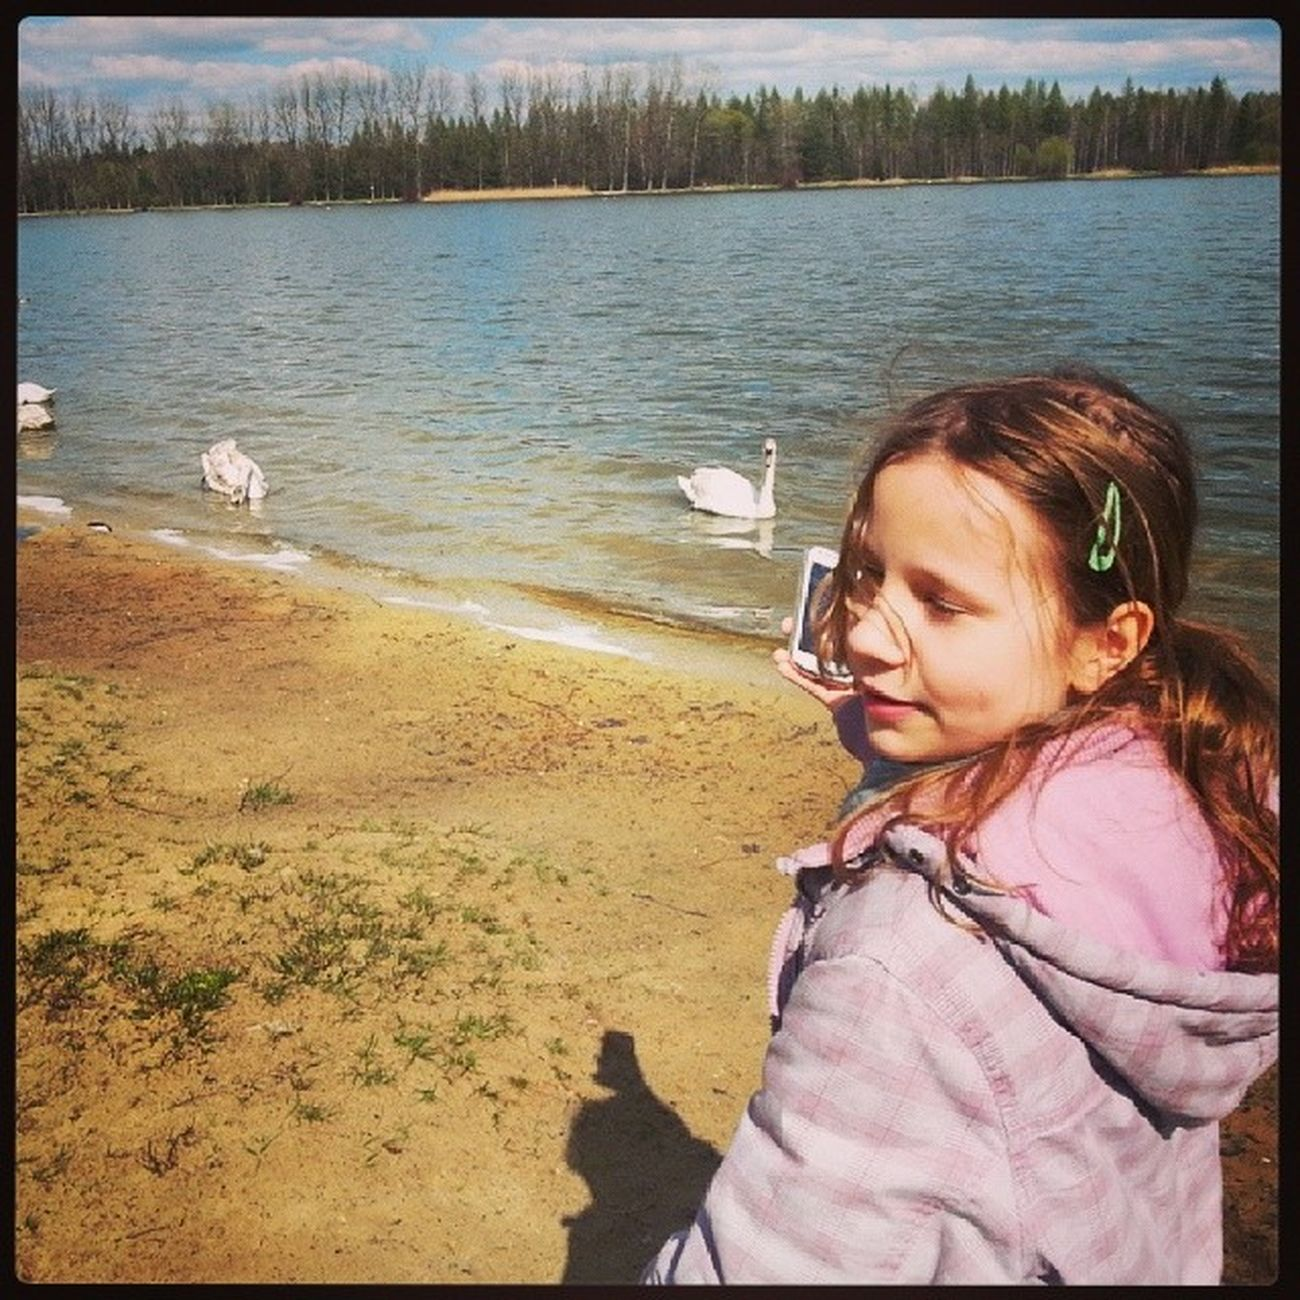 Sosina Jaworzno Poland City lake swans polish girl